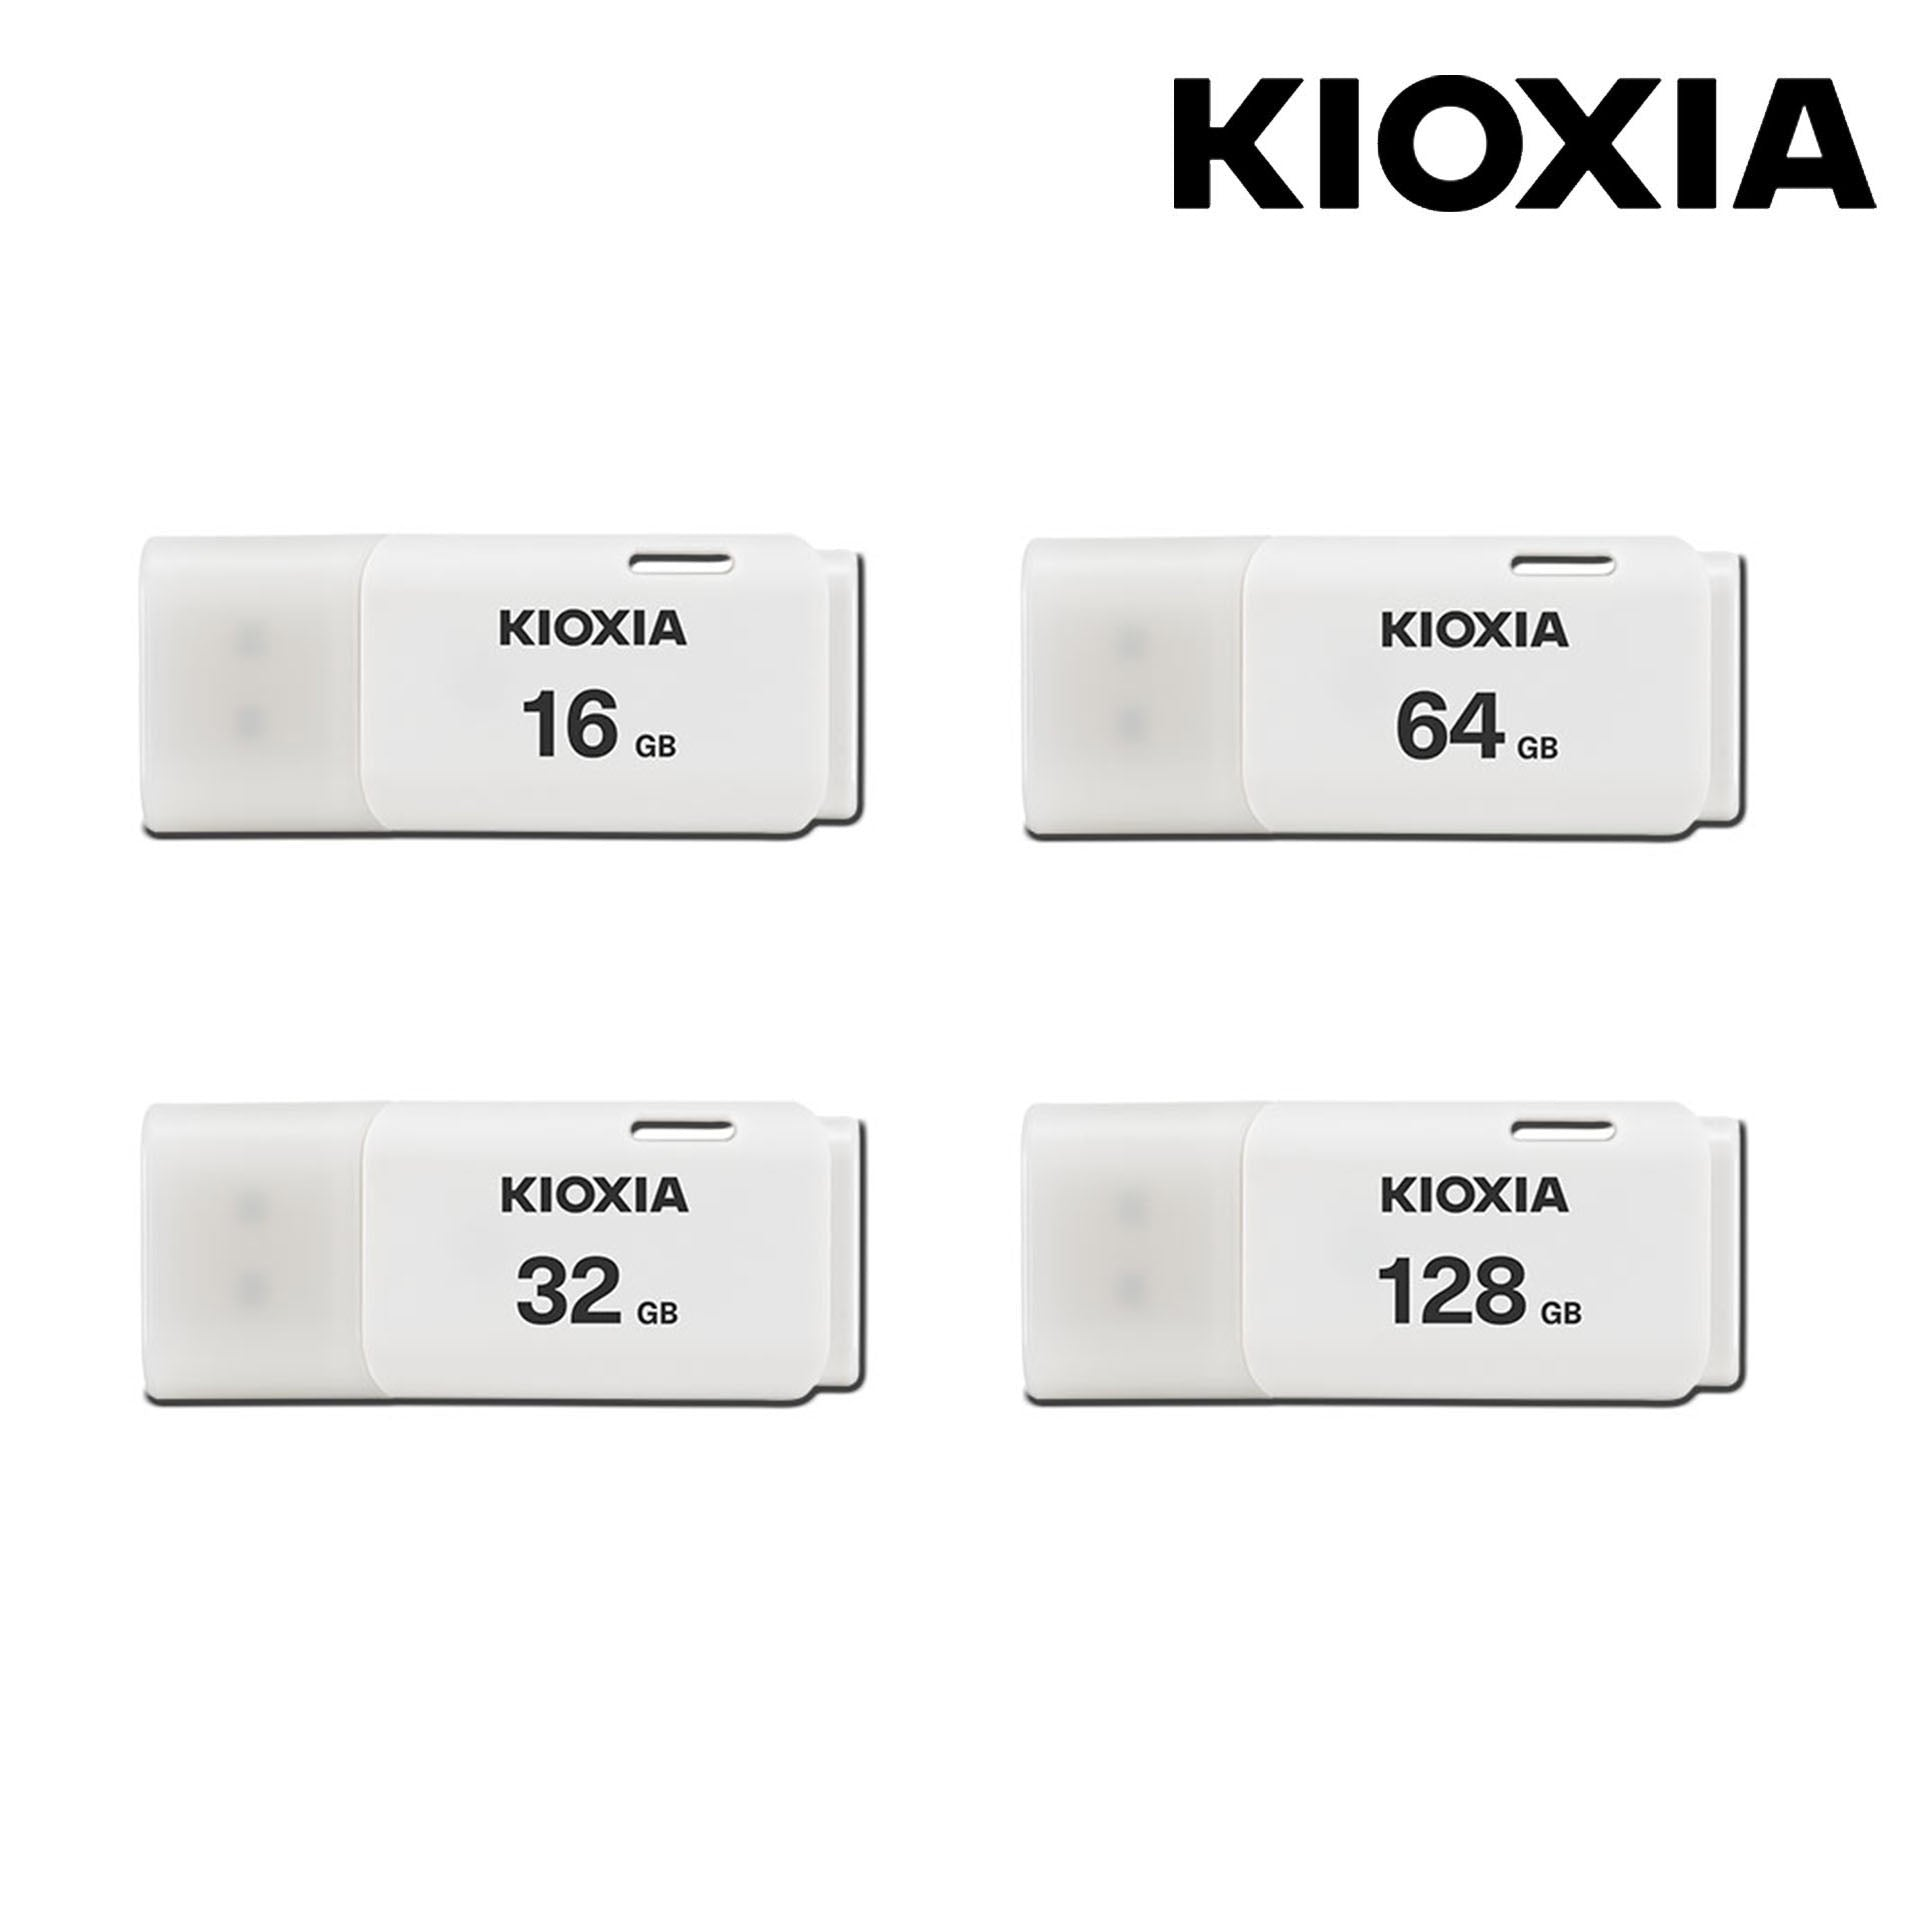 KIOXIA U202 USB 2.0 Flash Drive